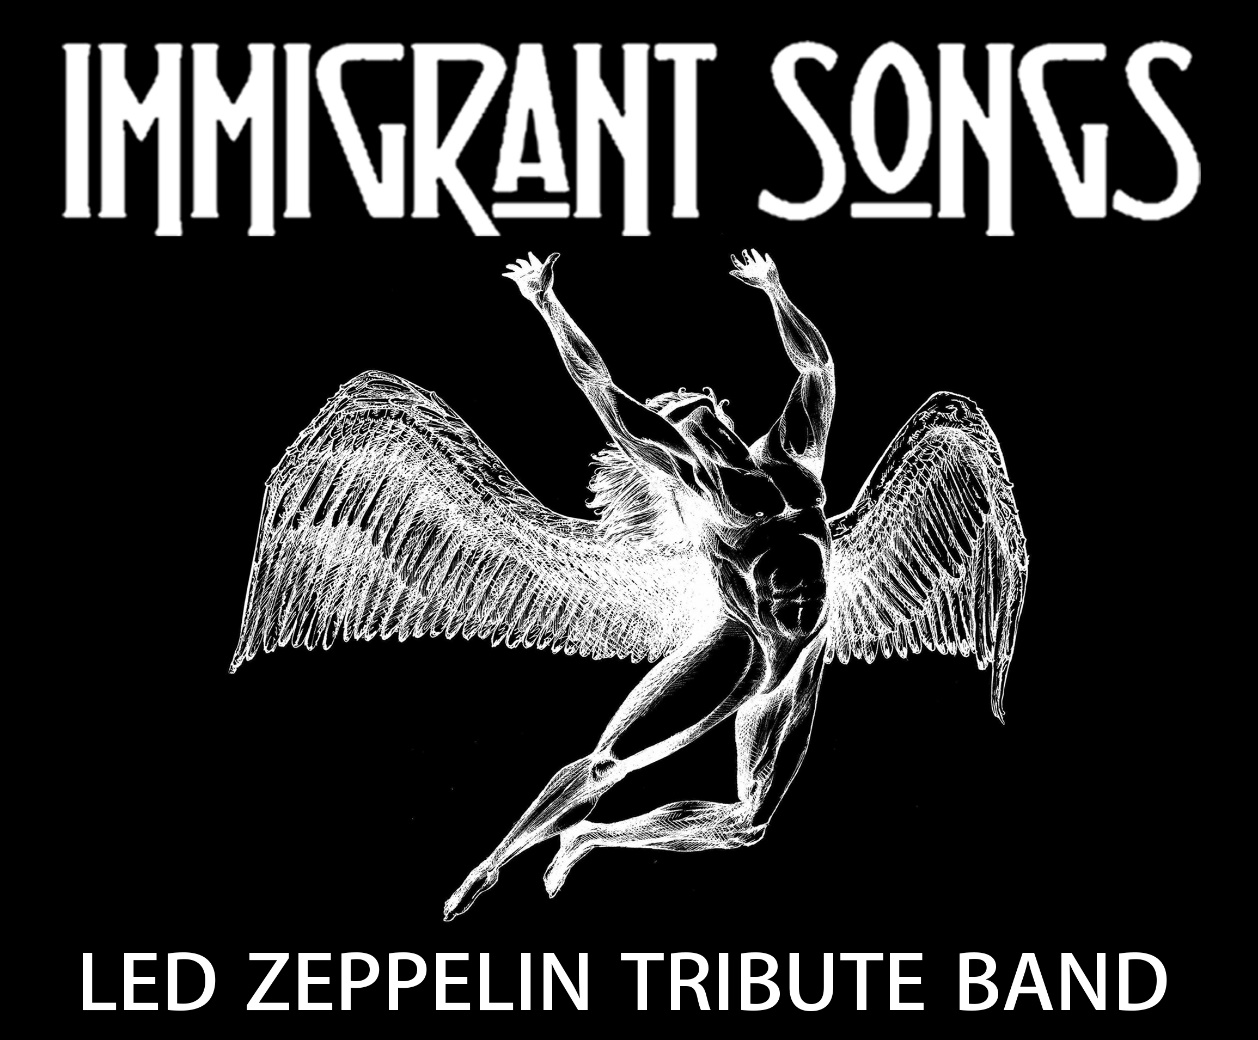 LED ZEPPELIN Tribute – IMMIGRANT SONGS